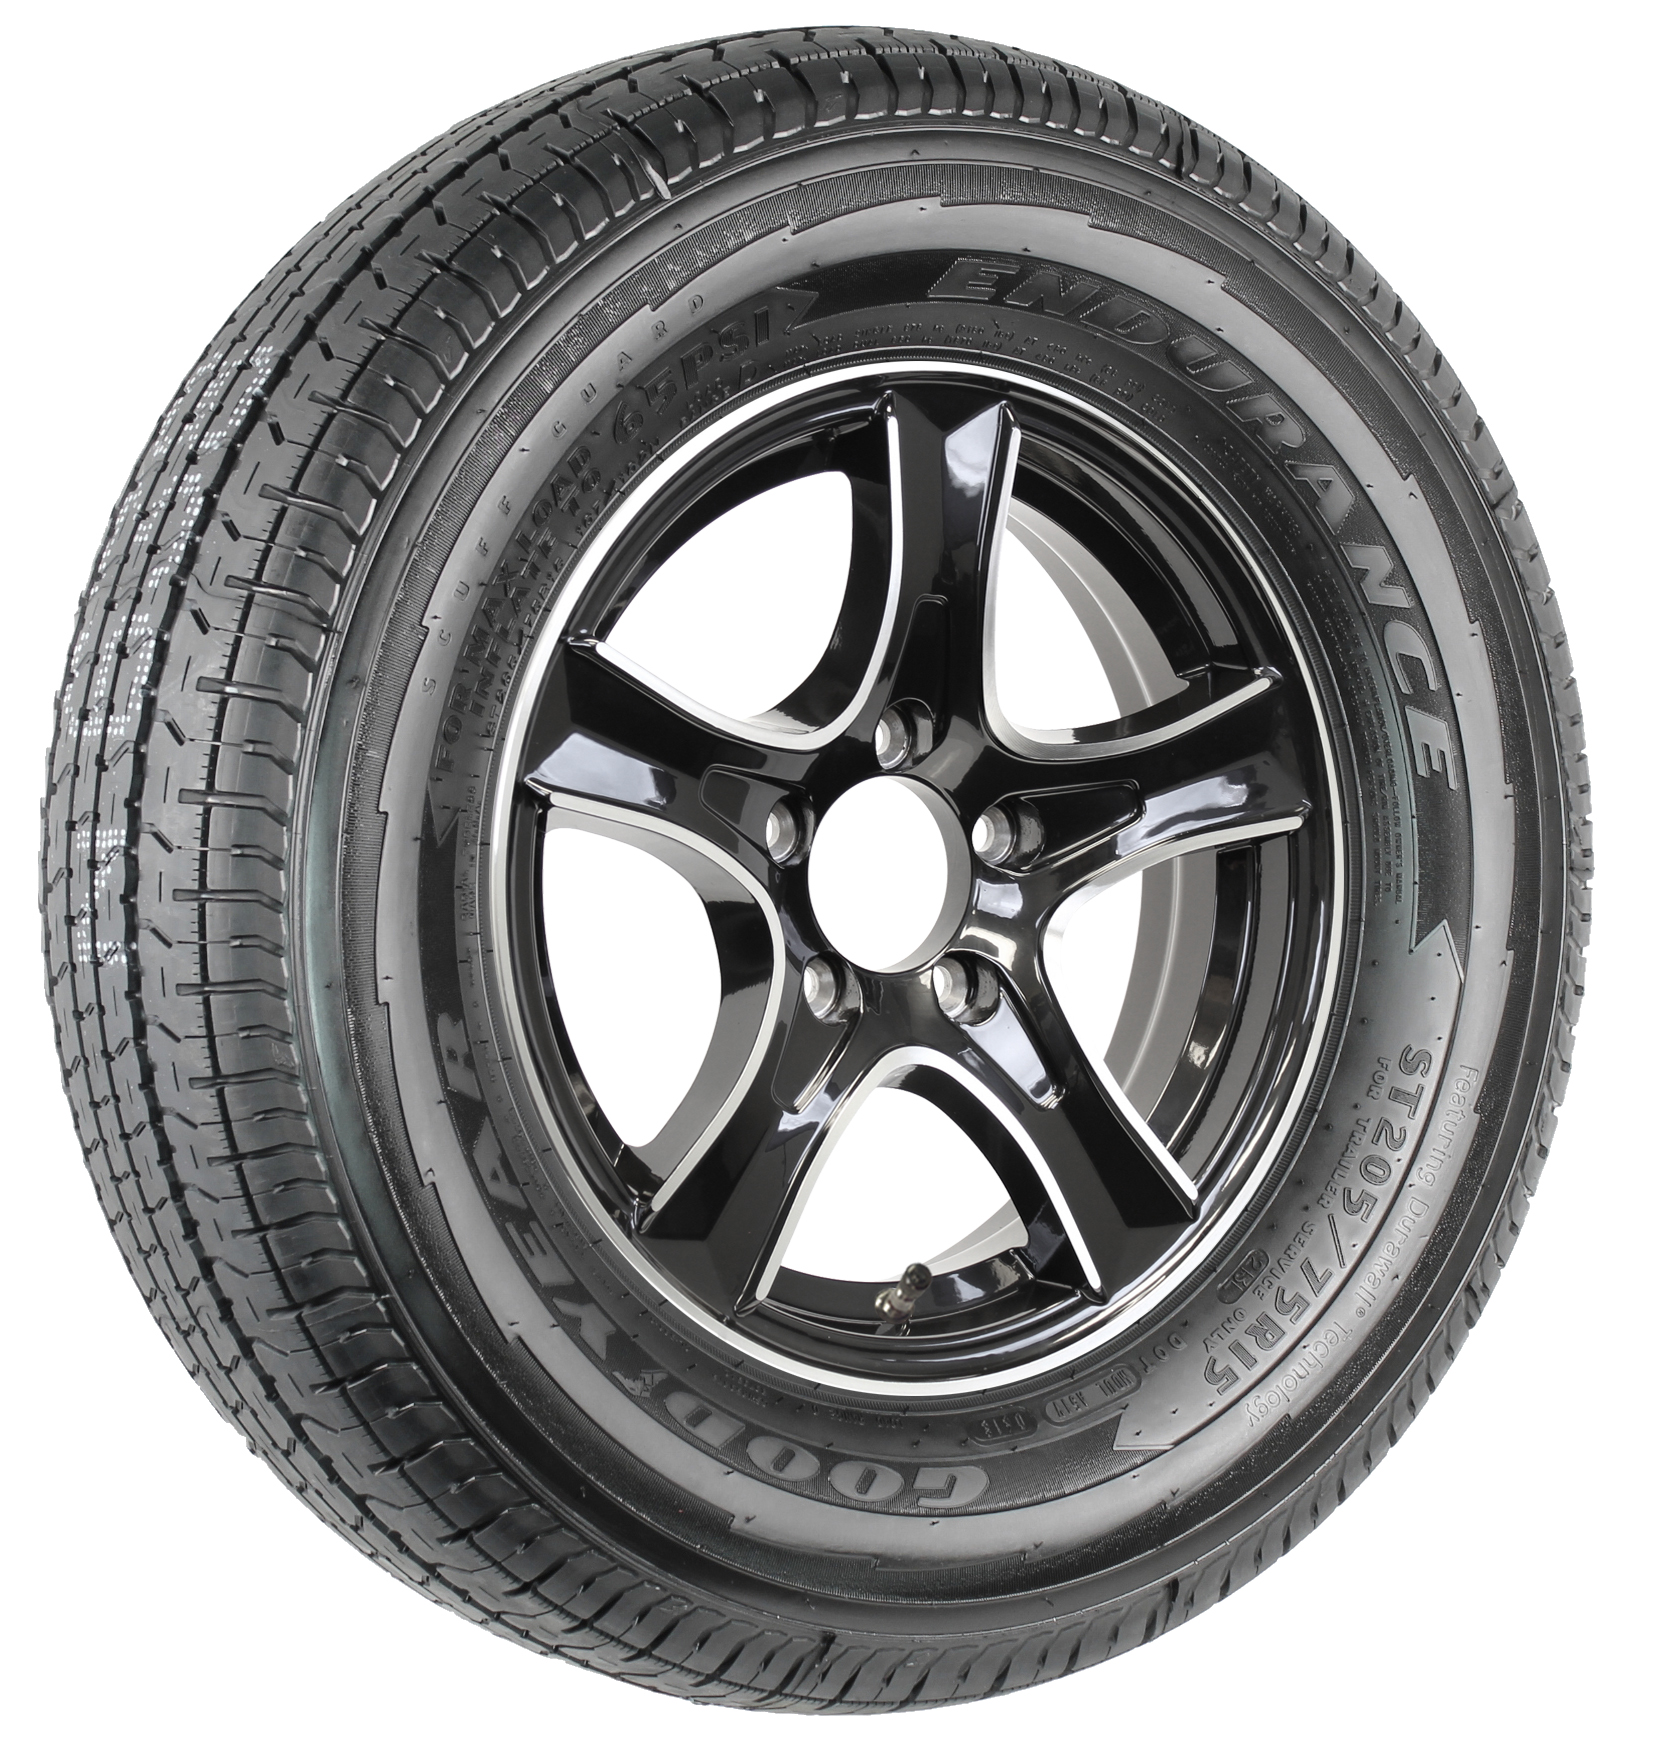 "Goodyear Endurance ST205/75R15 LRD on Thoroughbred 15"" 5-Lug Black Aluminum Assembly Image"